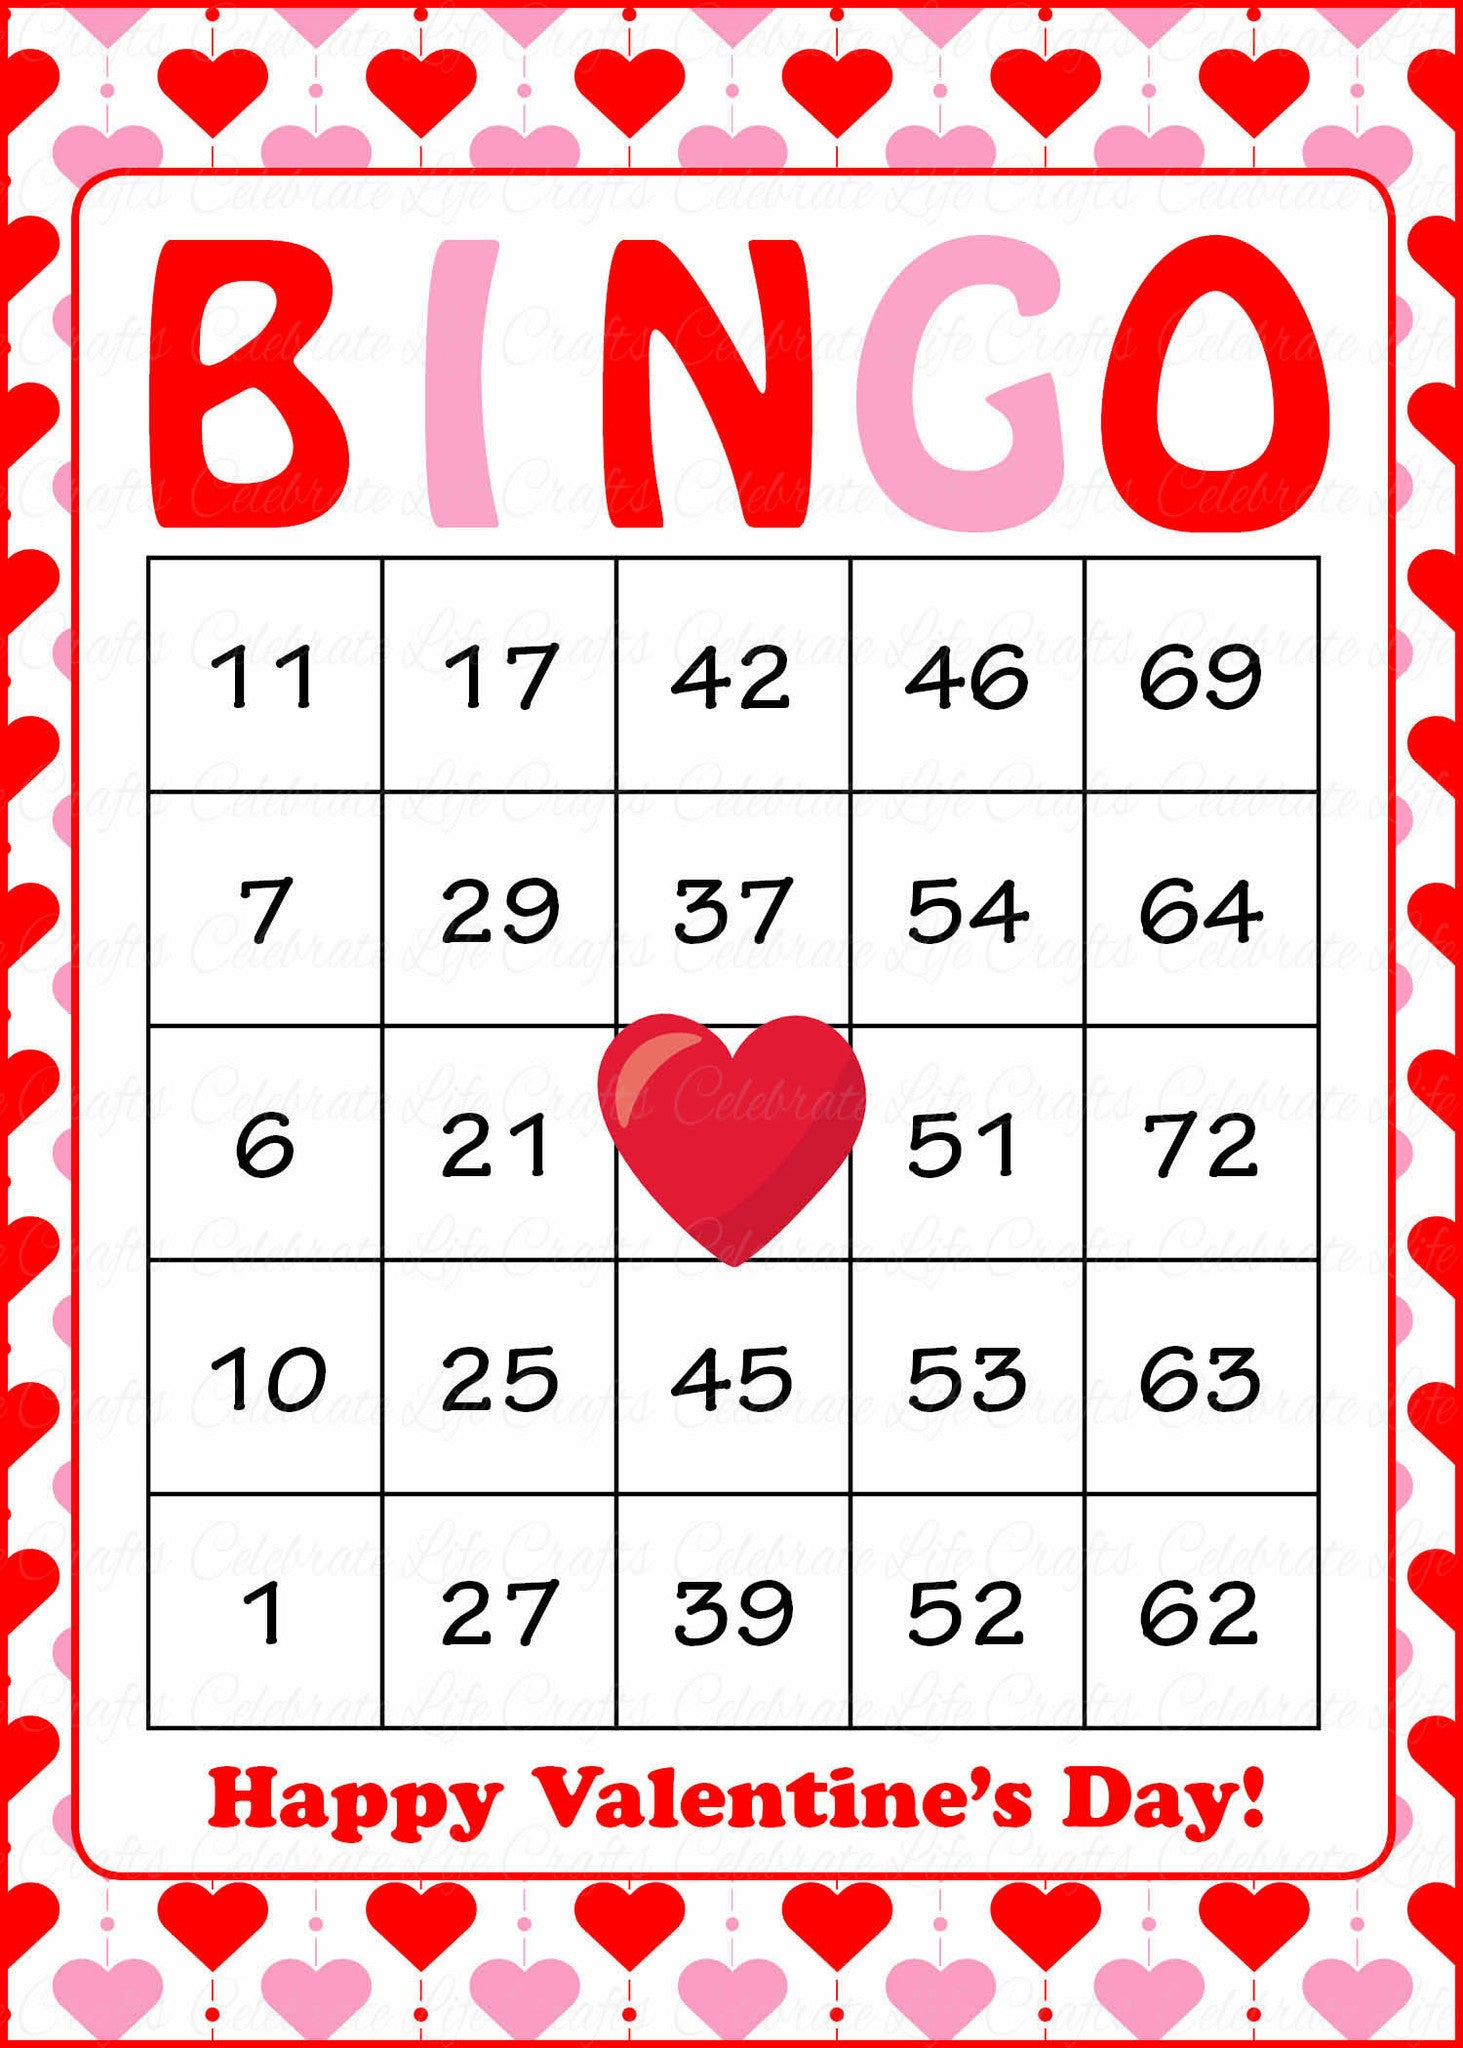 Valentine Bingo Game Download for Holiday Party Ideas ...